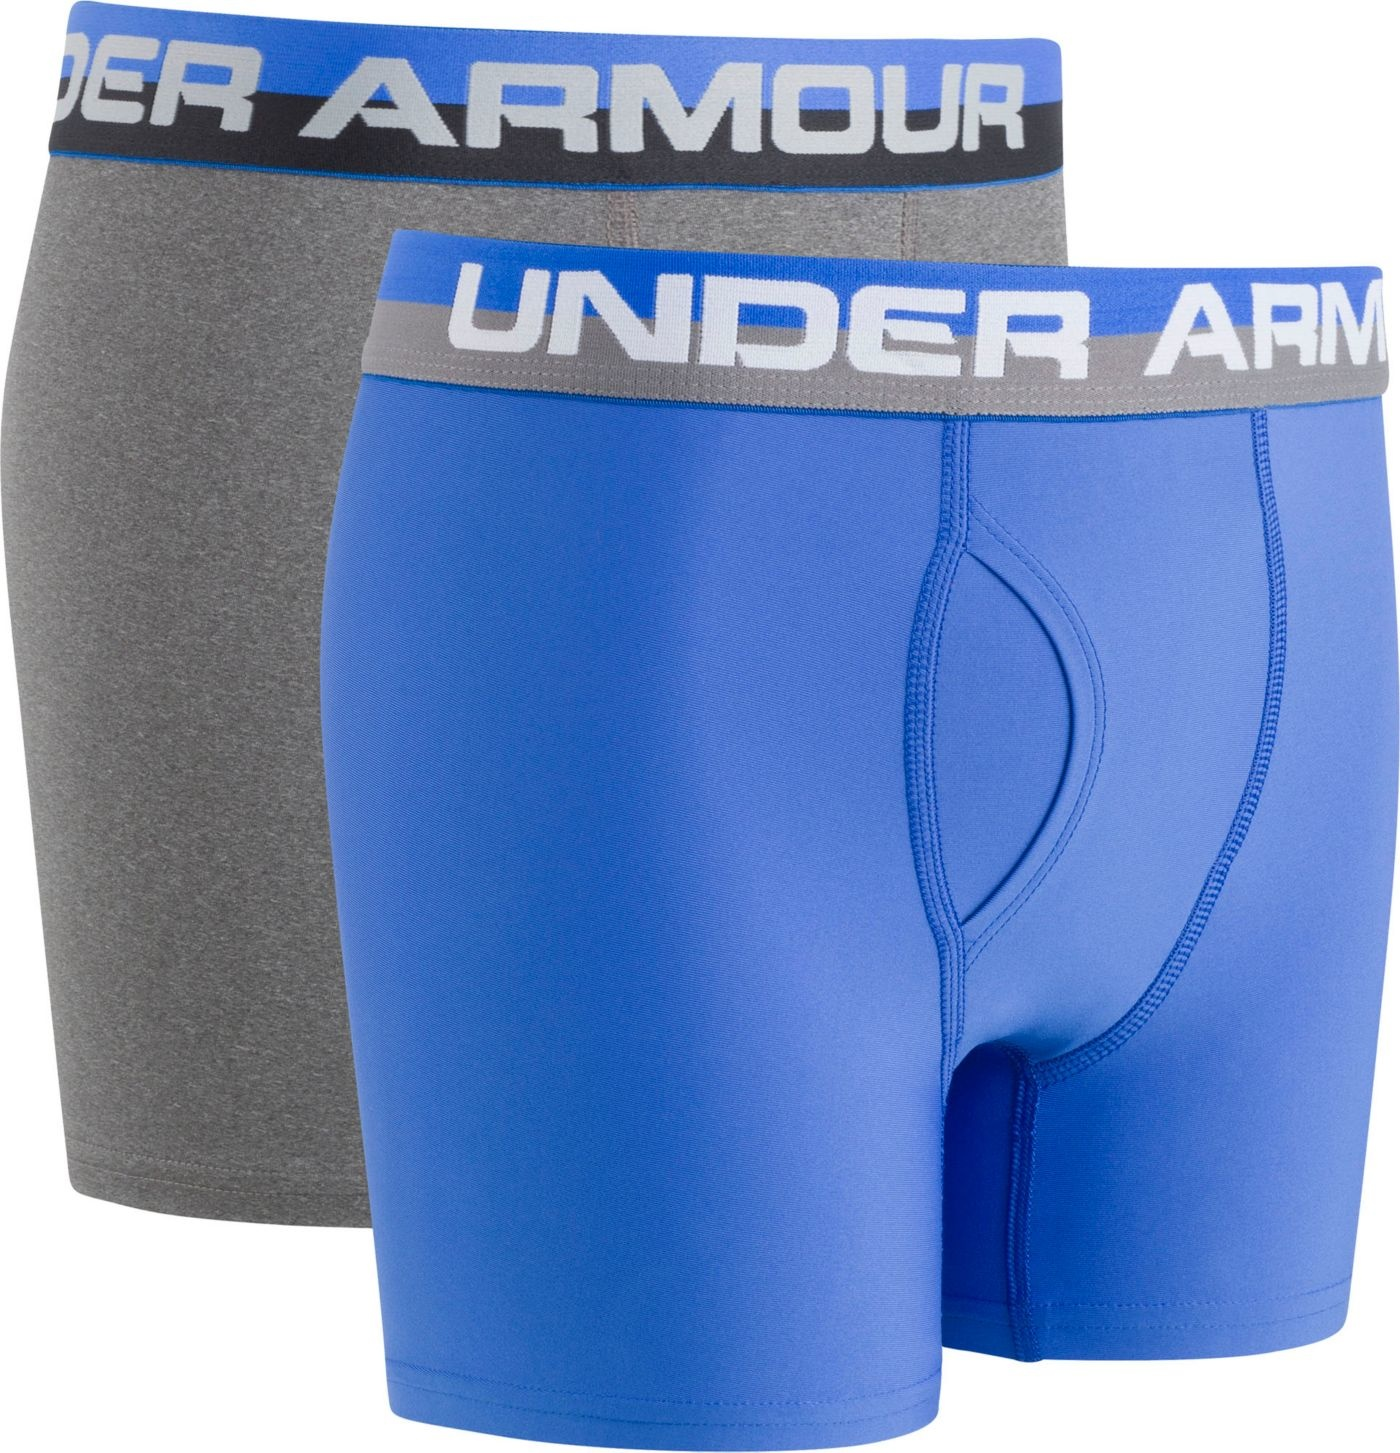 Th Pico Estar confundido  Under Armour Boys' Solid Performance Boxer Briefs - King Frog Clothing &  The LilyPad Boutique